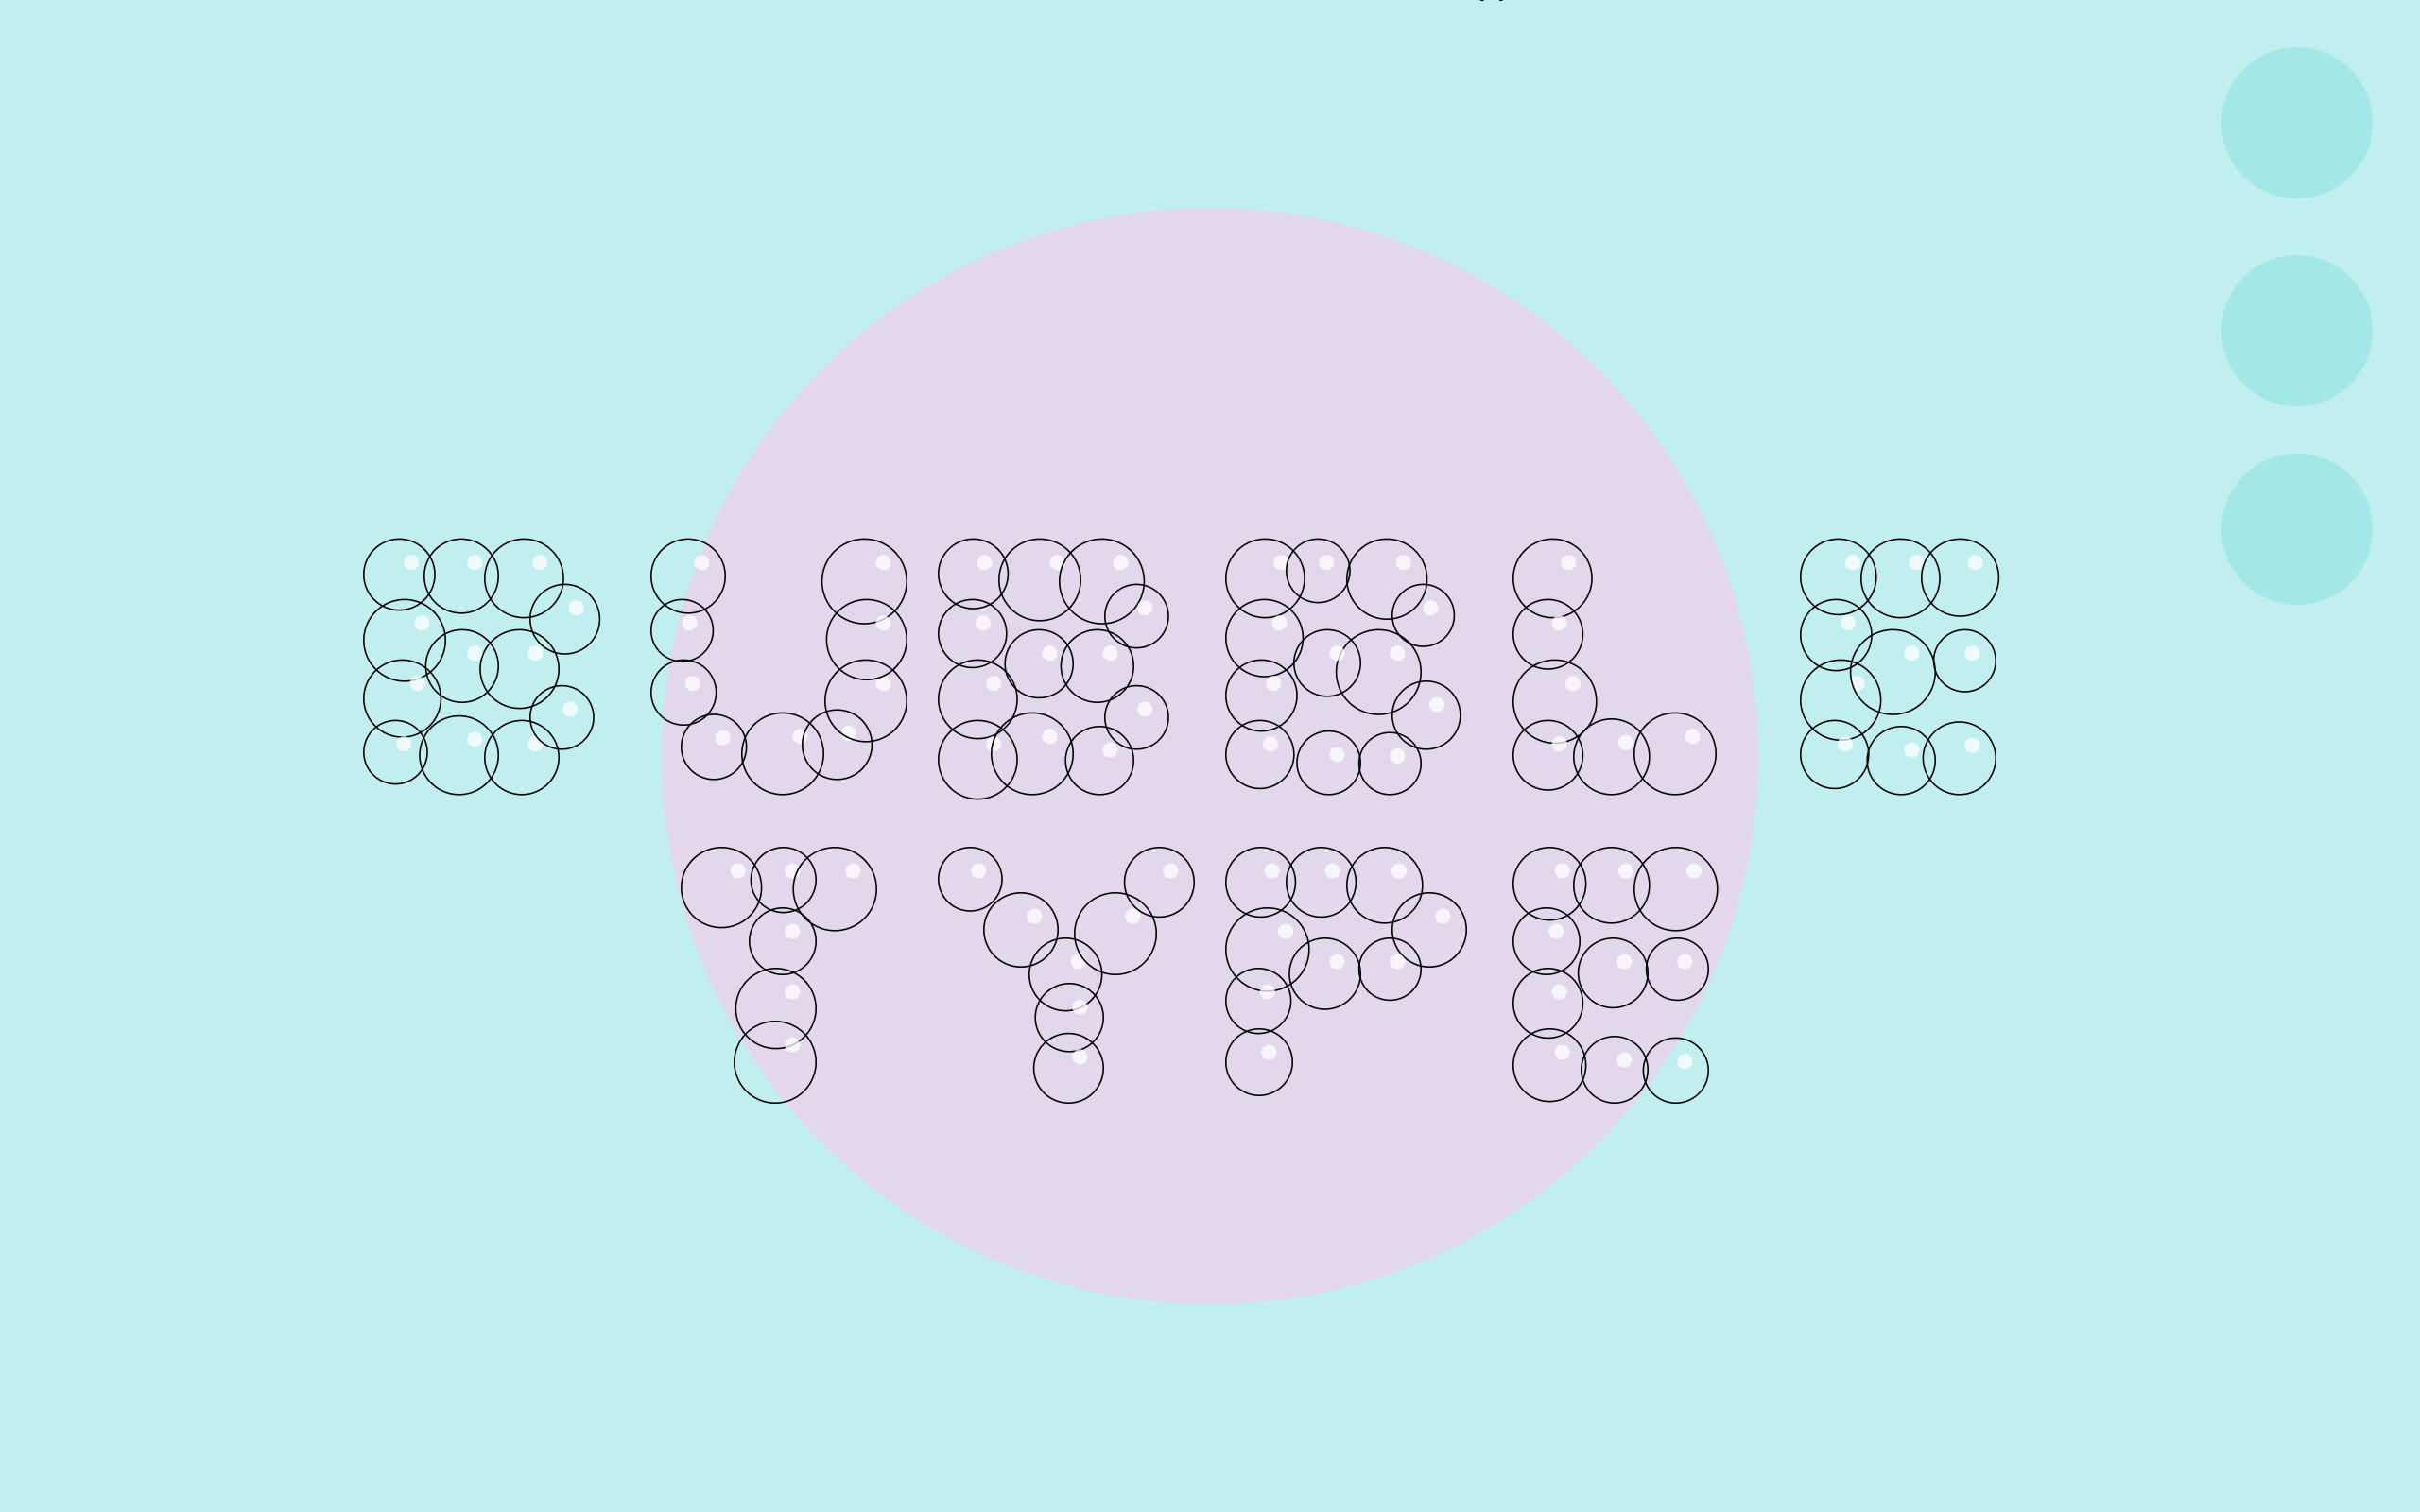 Bubble Type (Stroke) on pink and light blue background